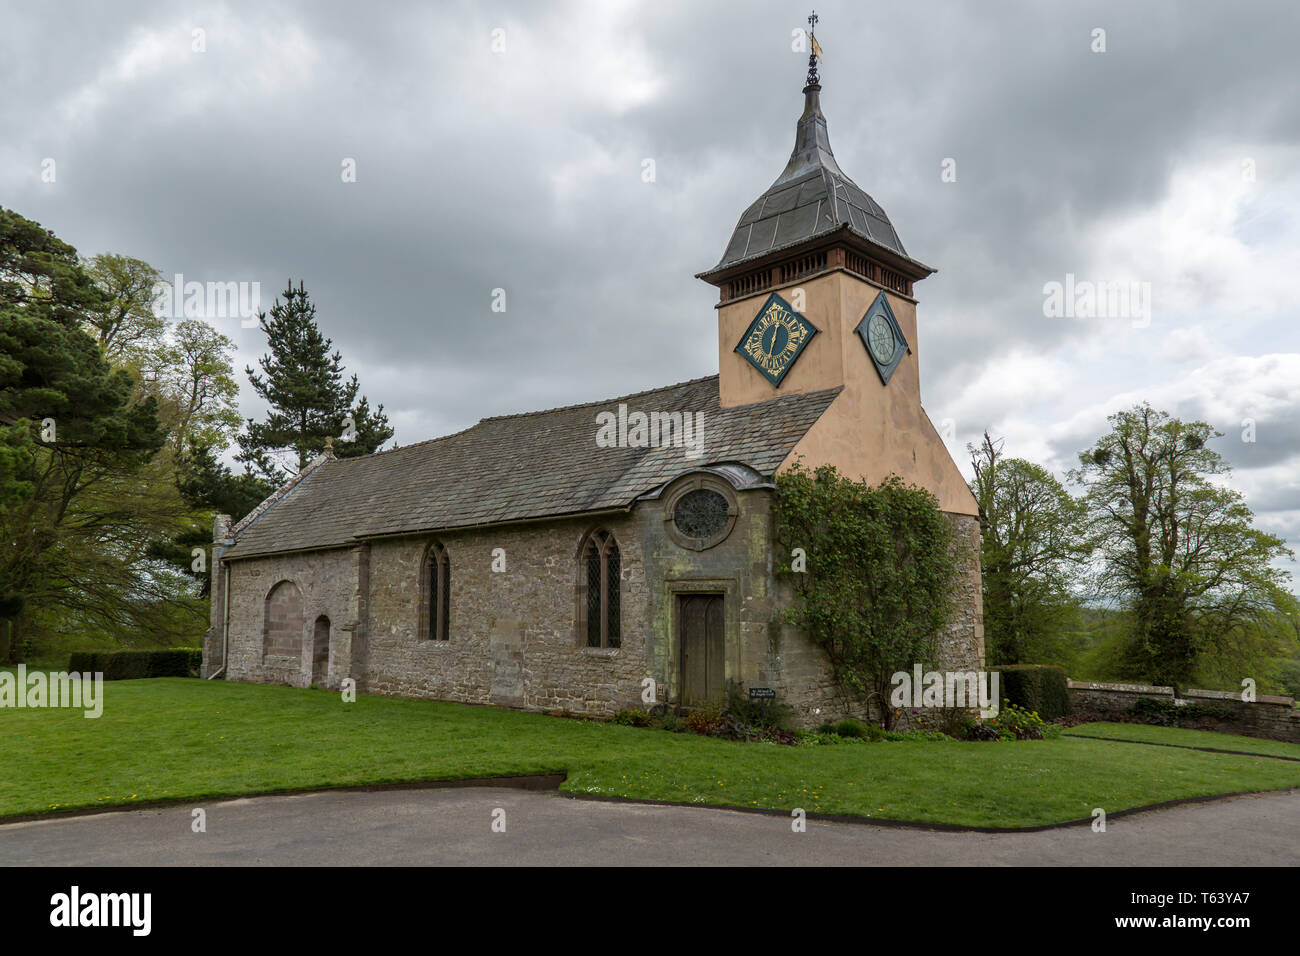 The 13th Century Chapel at Croft Castle in Yarpole, Herefordshire, England. - Stock Image